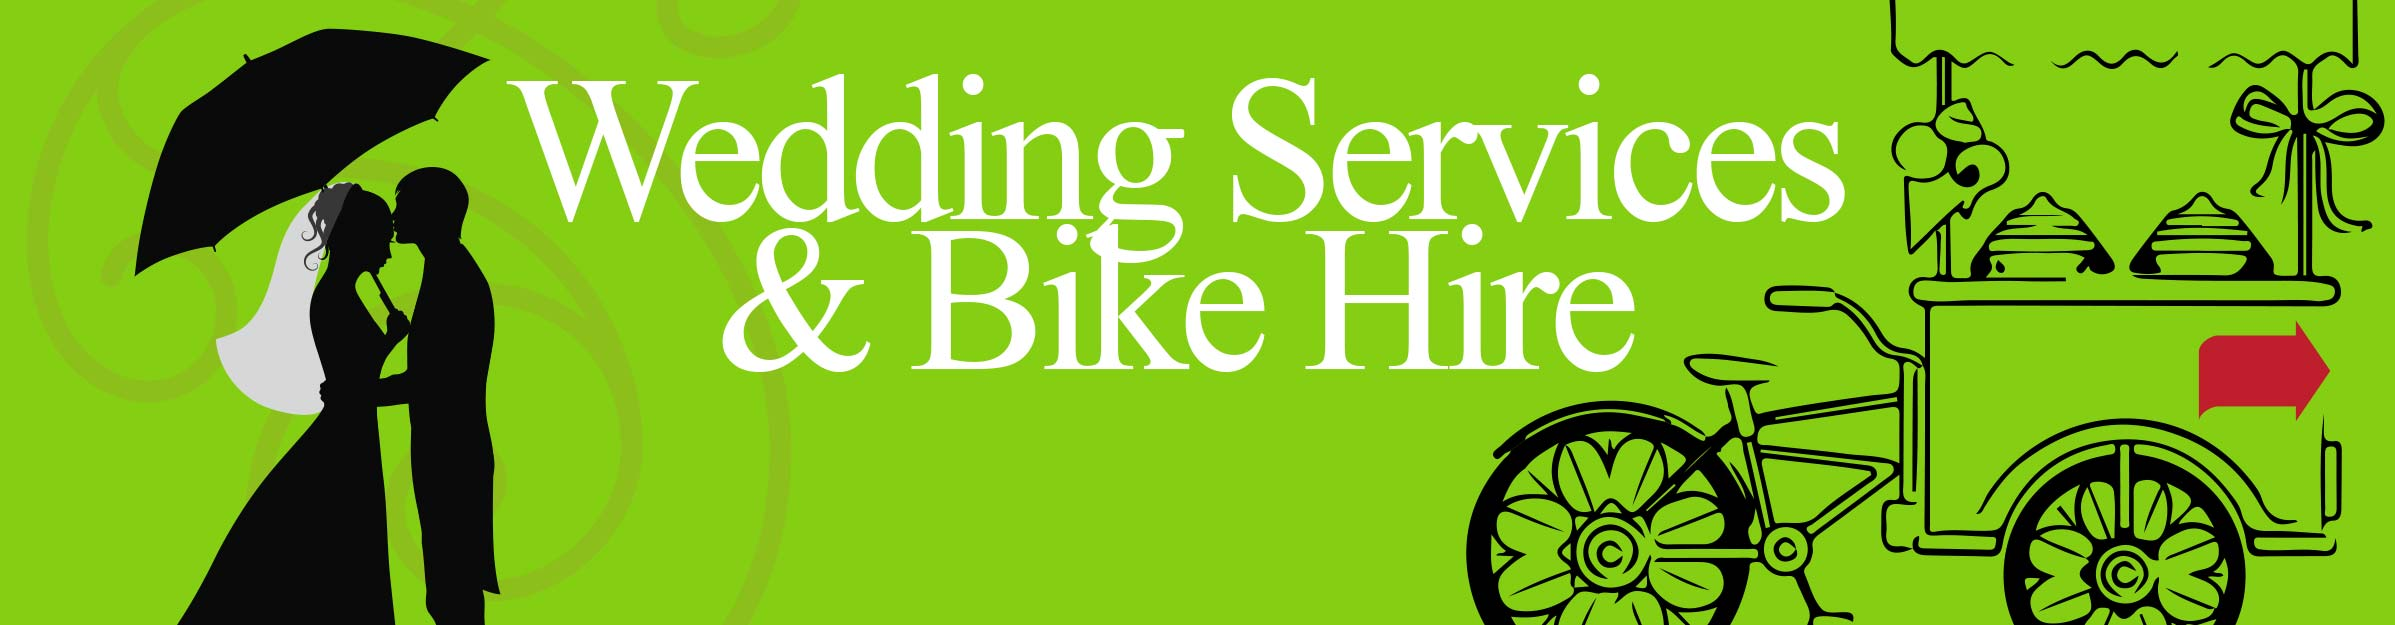 Wedding Bike Hire Services Ireland